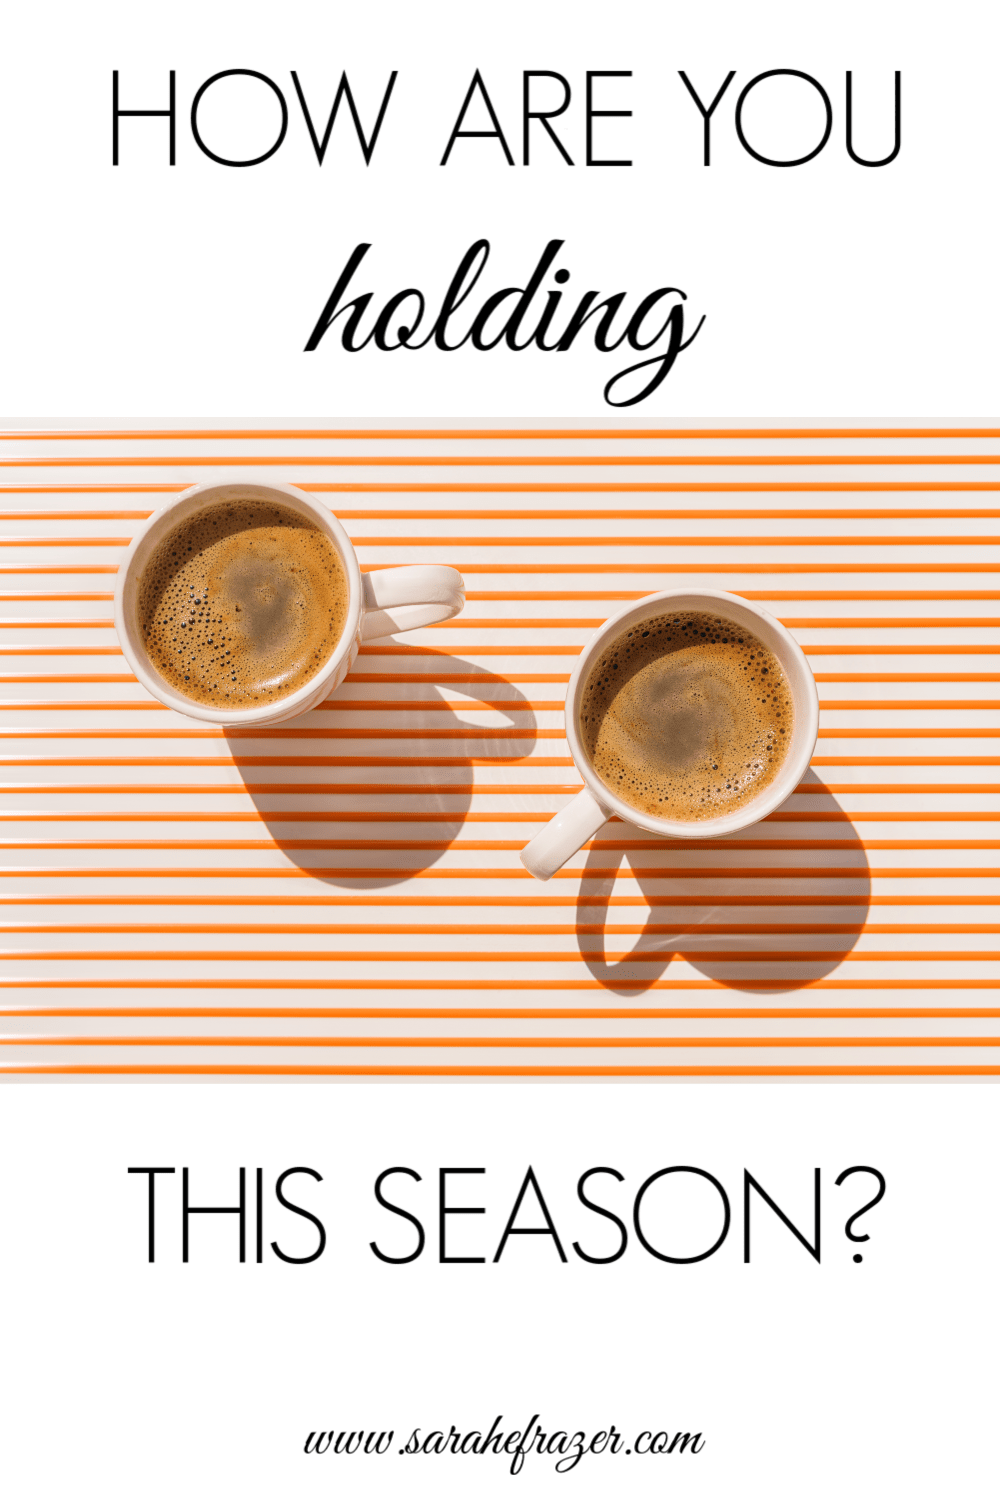 How Are You Holding This Season?